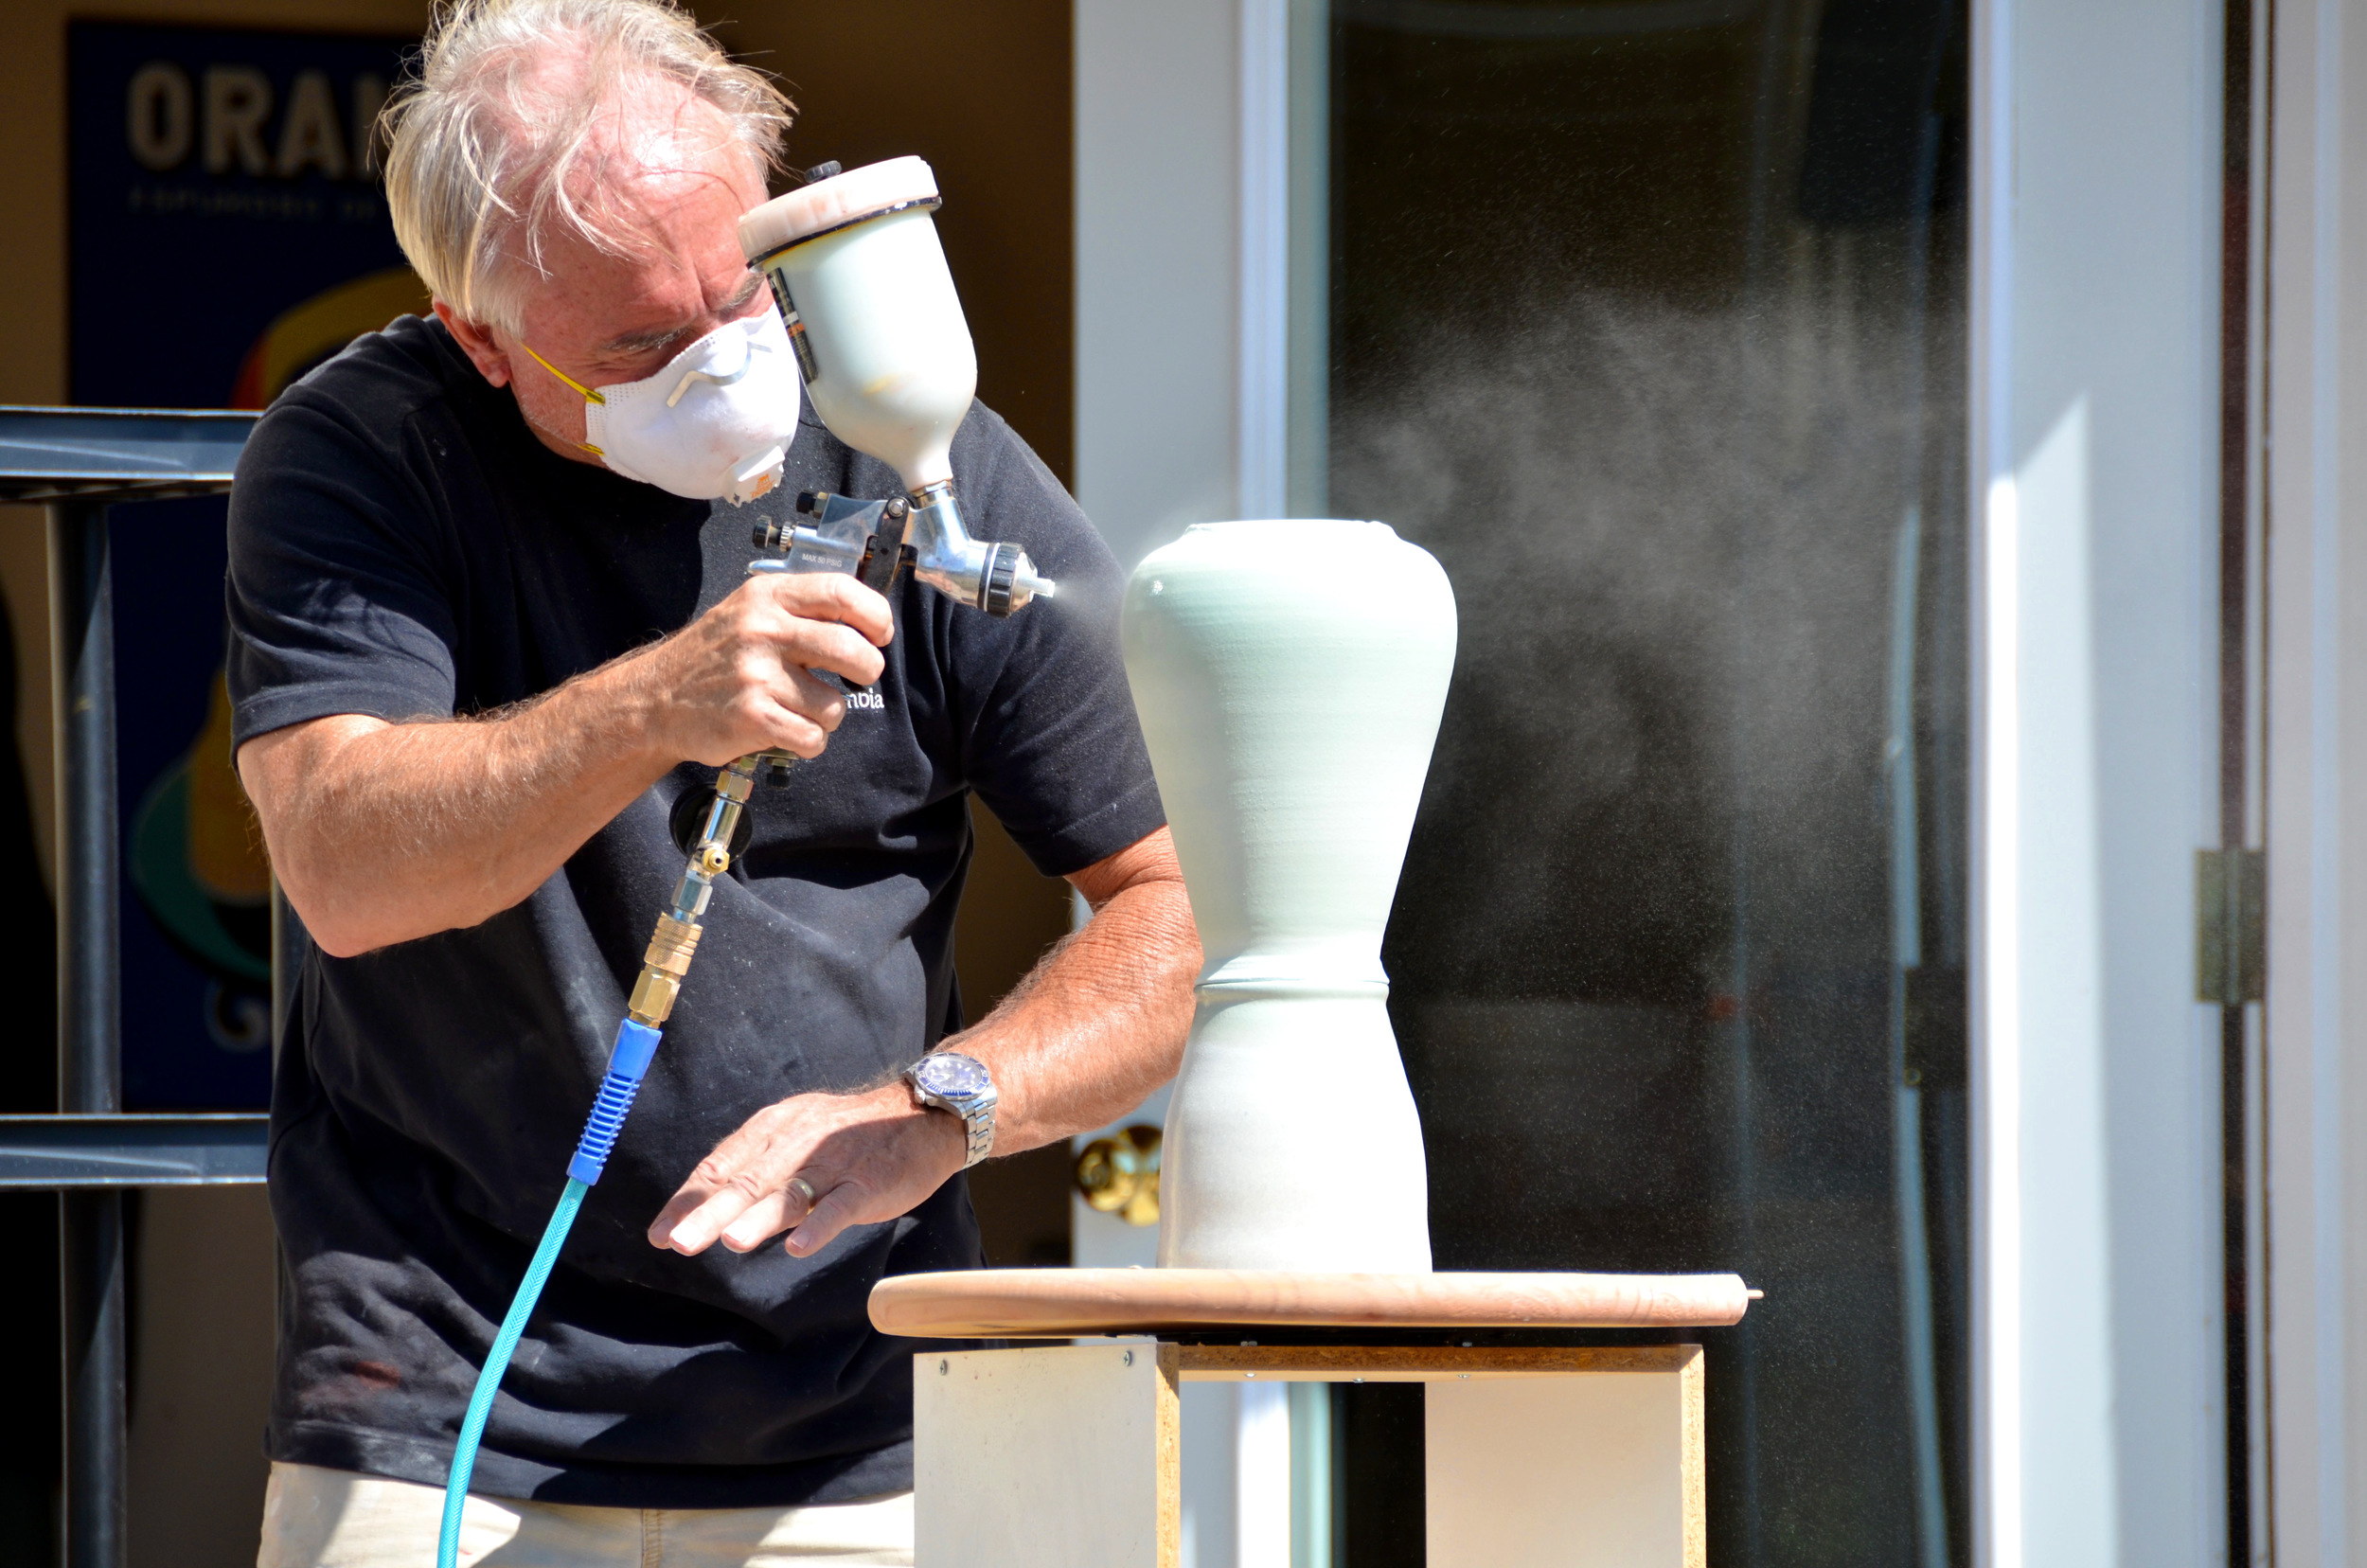 David Caldwell hand glazing porcelain pieces in their Park City studio | Caldwell Pottery